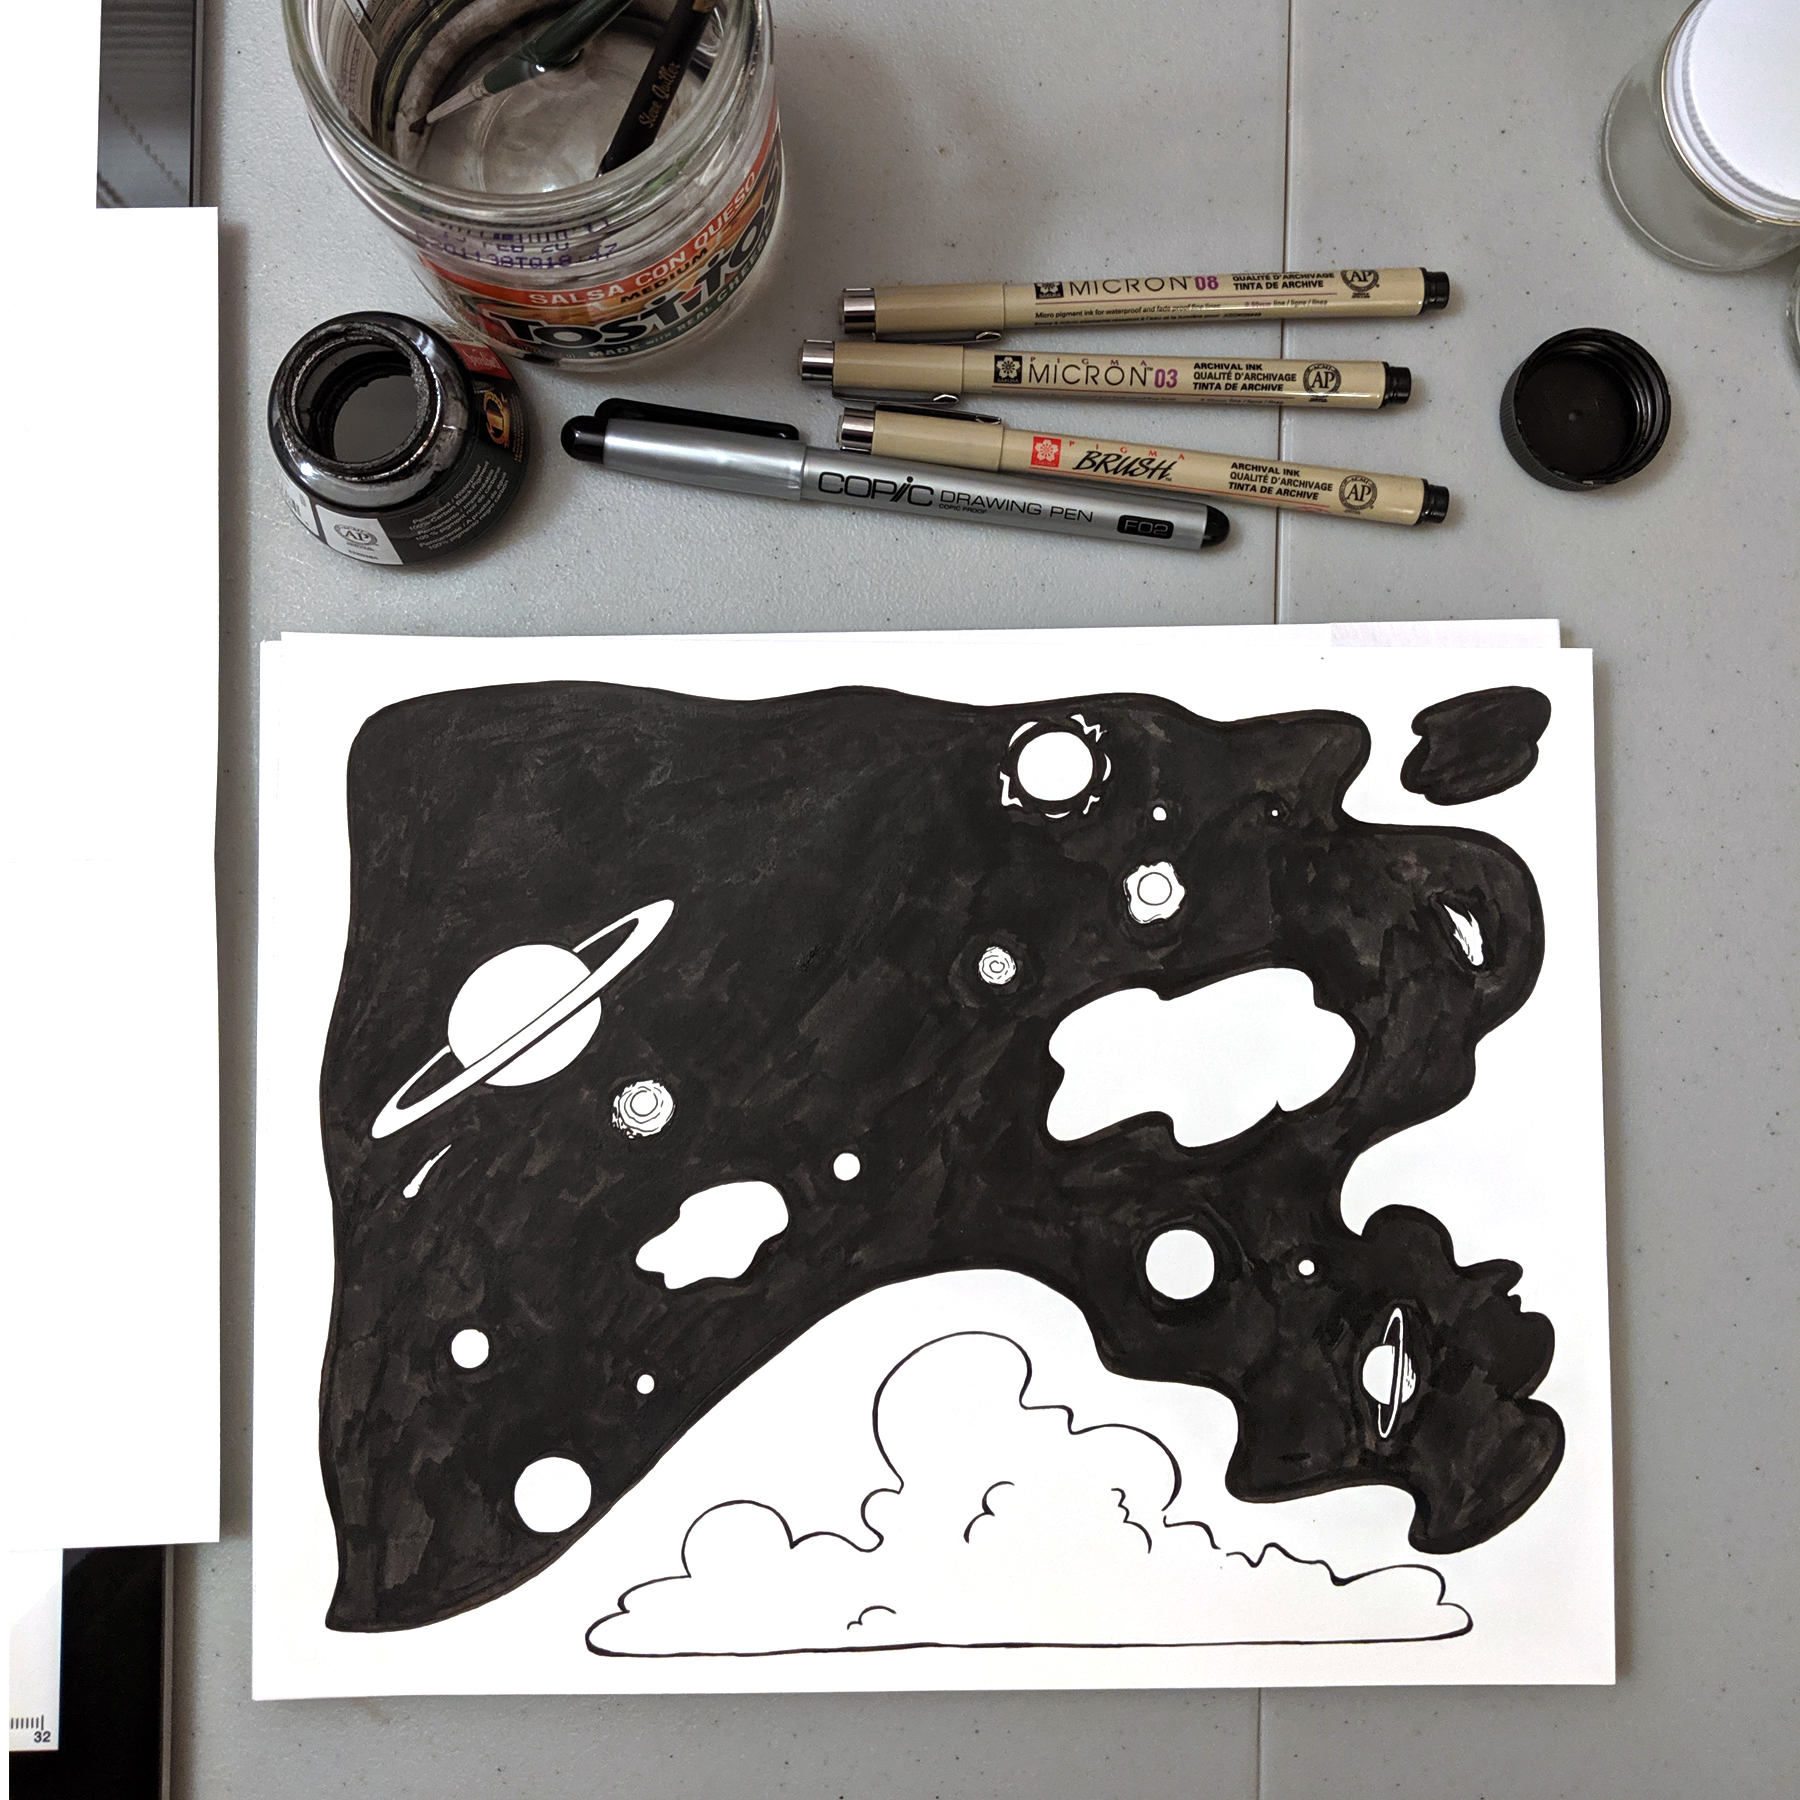 Here's what I got done in one hour for day one of Inktober. Next I have a vision for a sky filled with stars!